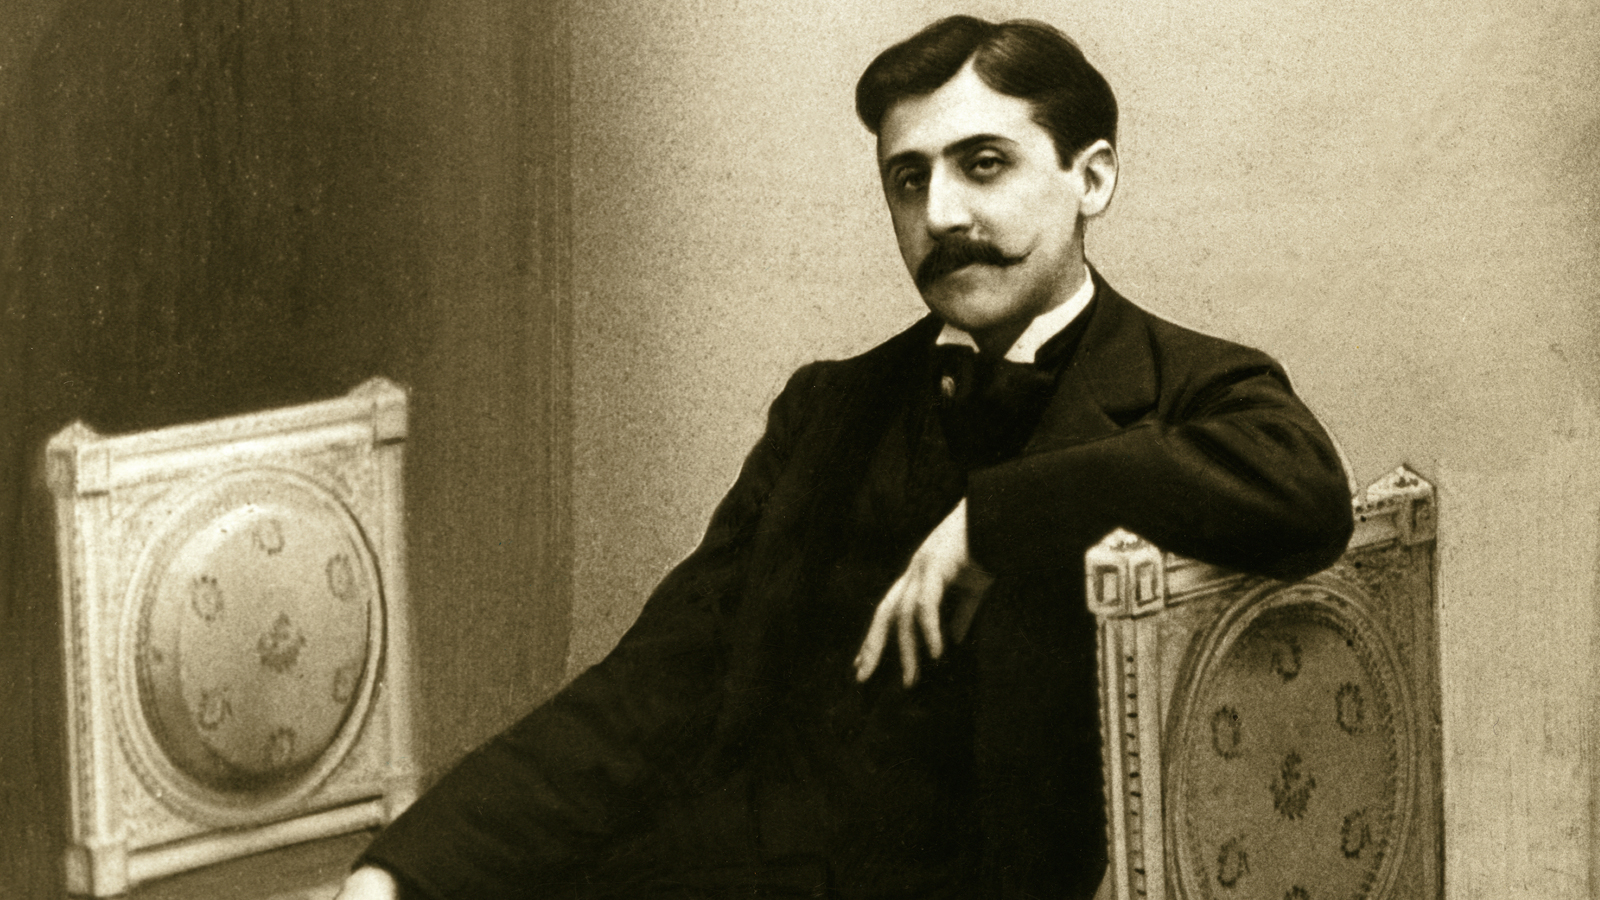 Modernism, time and consciousness: The influence of Henri Bergson and Marcel Proust